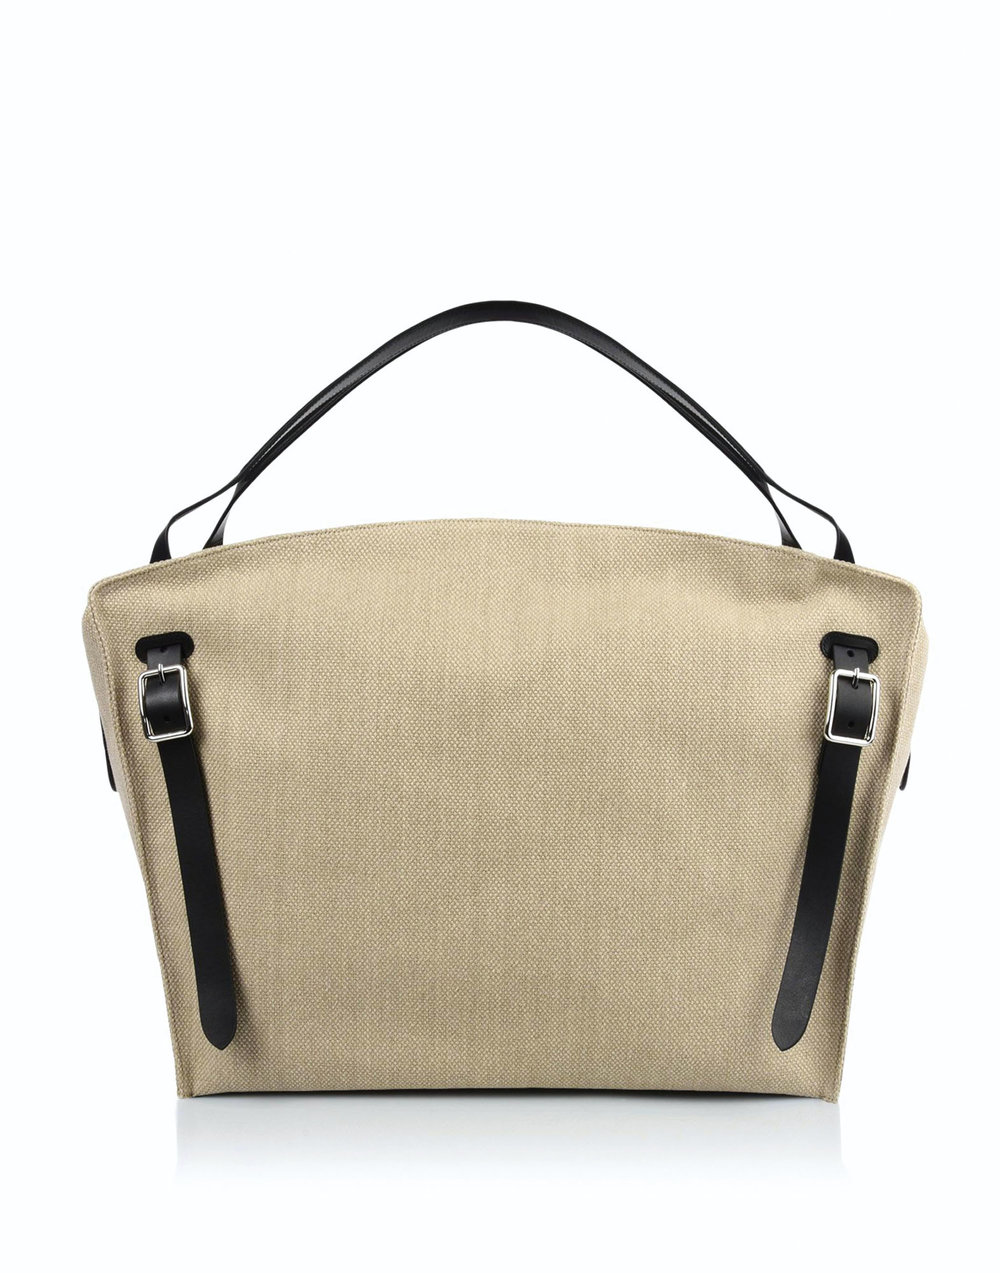 Weekend Bag by Jil Sander